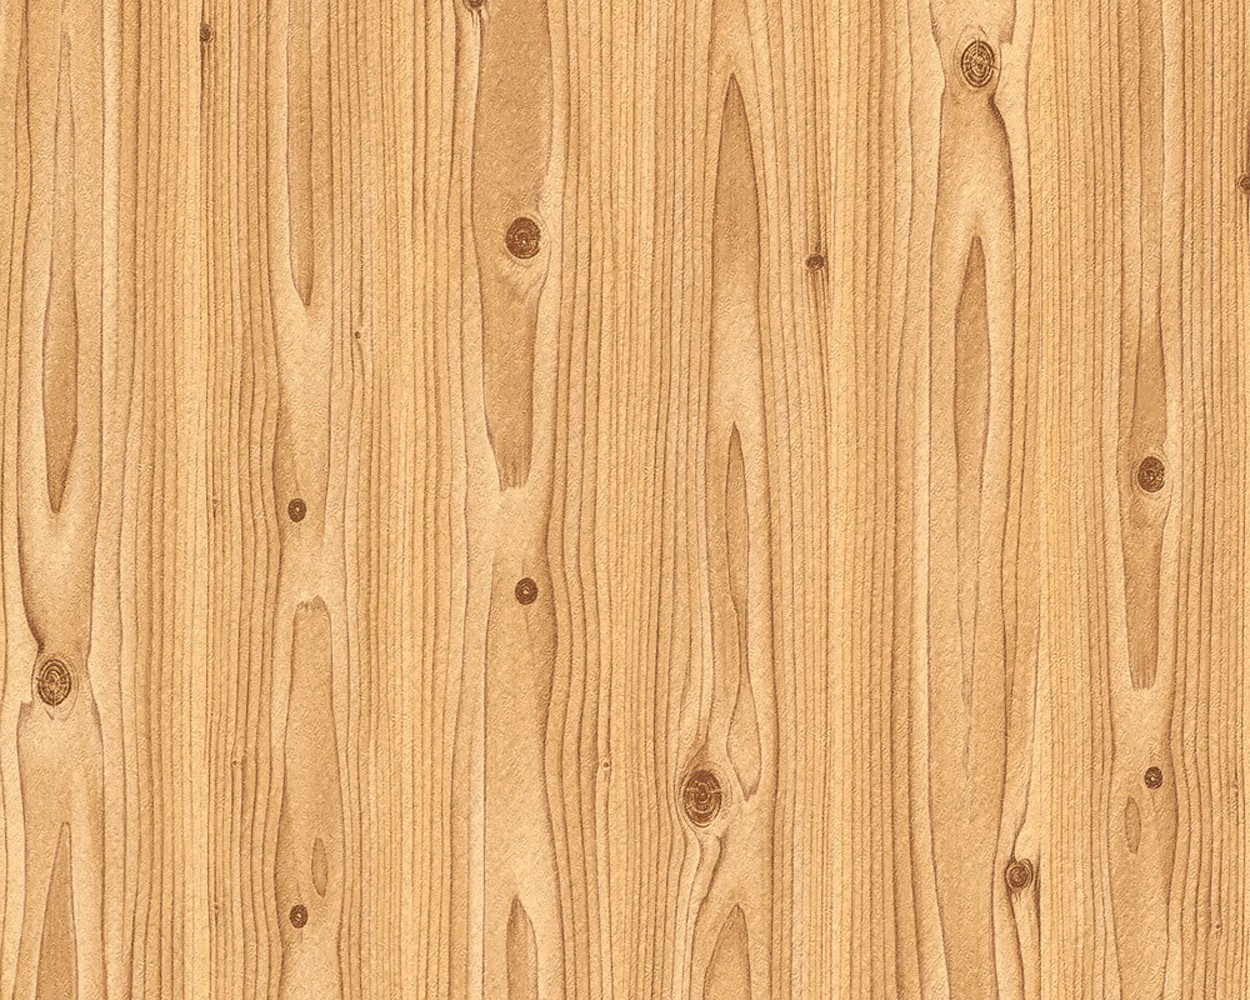 Tapete braun tapete holz as creation 7799 15 for Holz tapete weiay